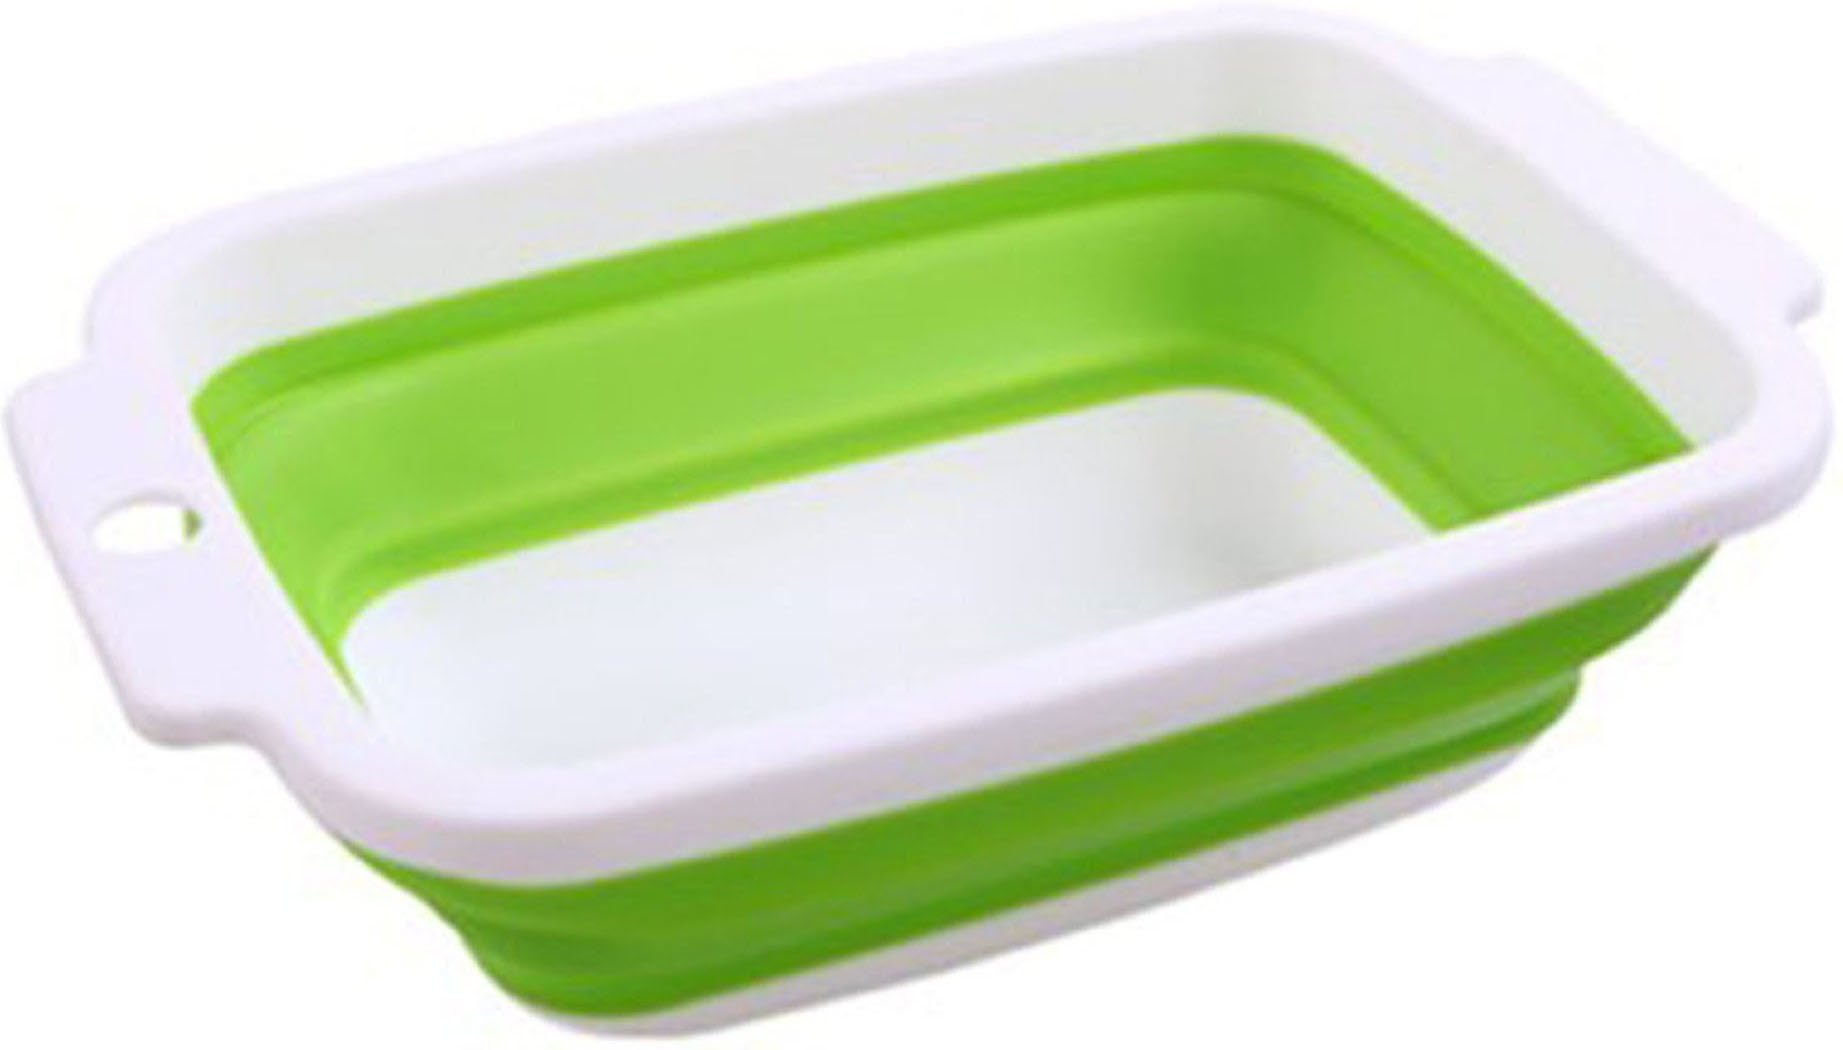 Neeshow Collapsible Dish Tub Collapsible Bowl (Green)